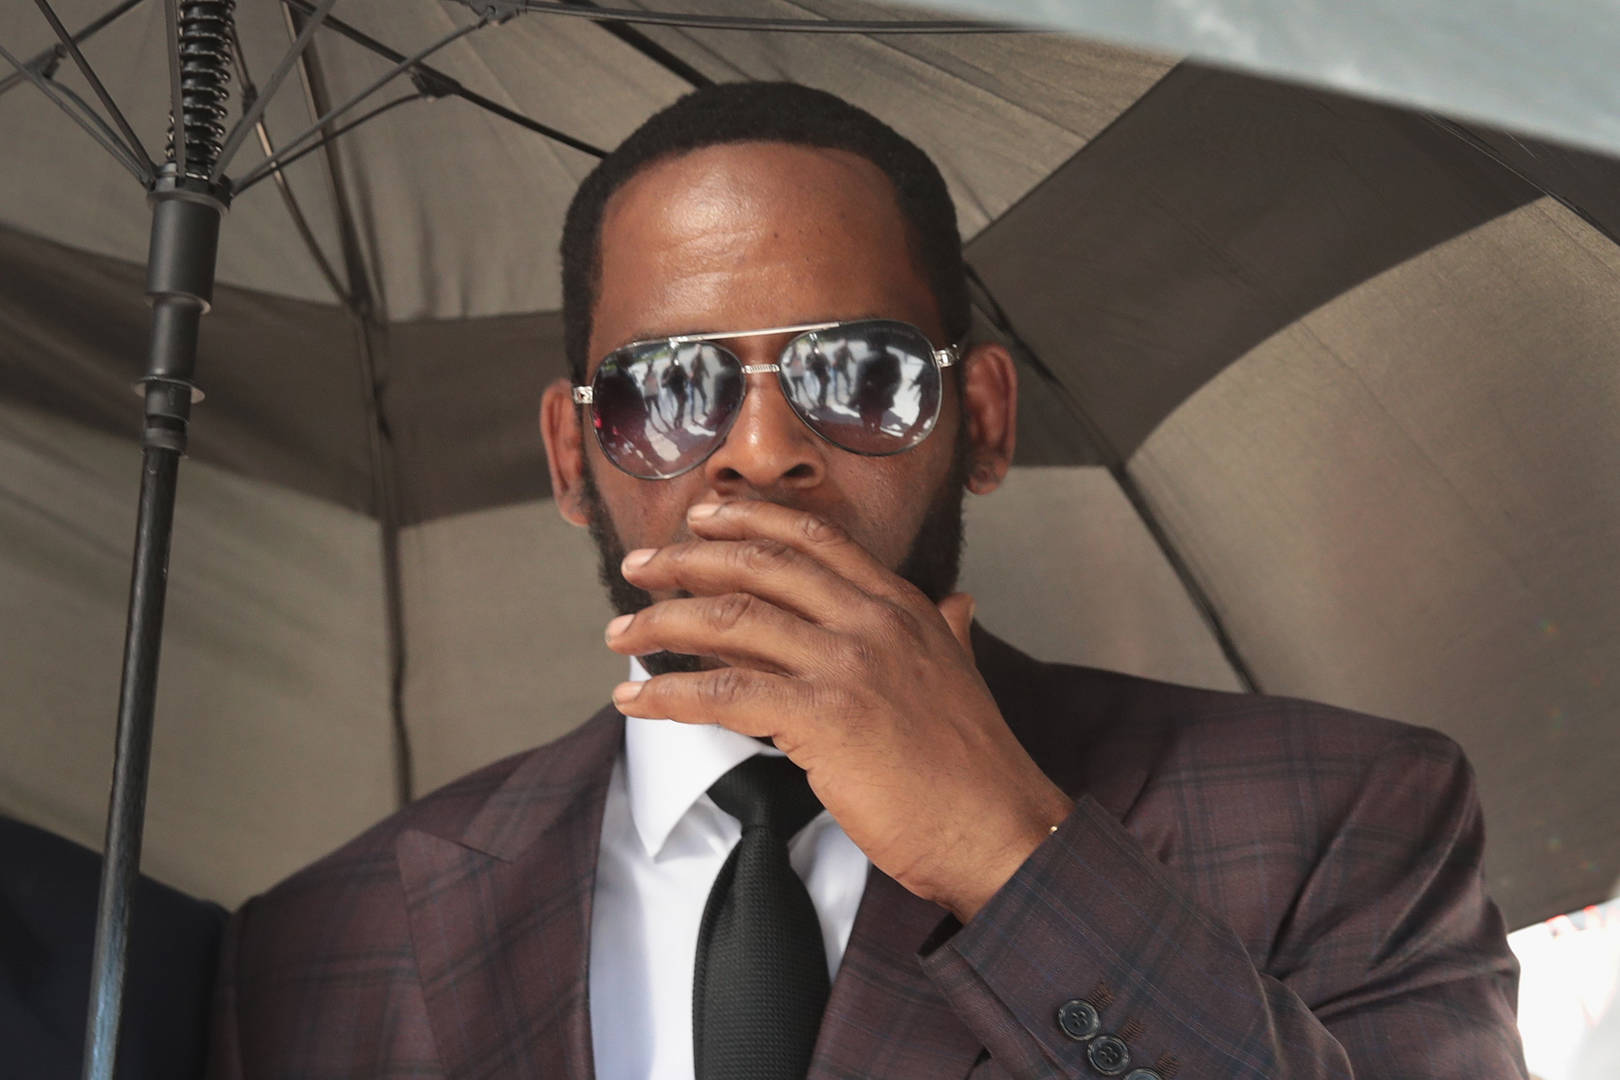 R&B singer R. Kelly covers his mouth as he speaks to members of his entourage as he leaves the Leighton Criminal Courts Building following a hearing on June 26, 2019 in Chicago, Illinois. Prosecutors turned over to Kelly's defense team a DVD that alleges to show Kelly having sex with an underage girl in the 1990s. Kelly has been charged with multiple sex crimes involving four women, three of whom were underage at the time of the alleged encounters.